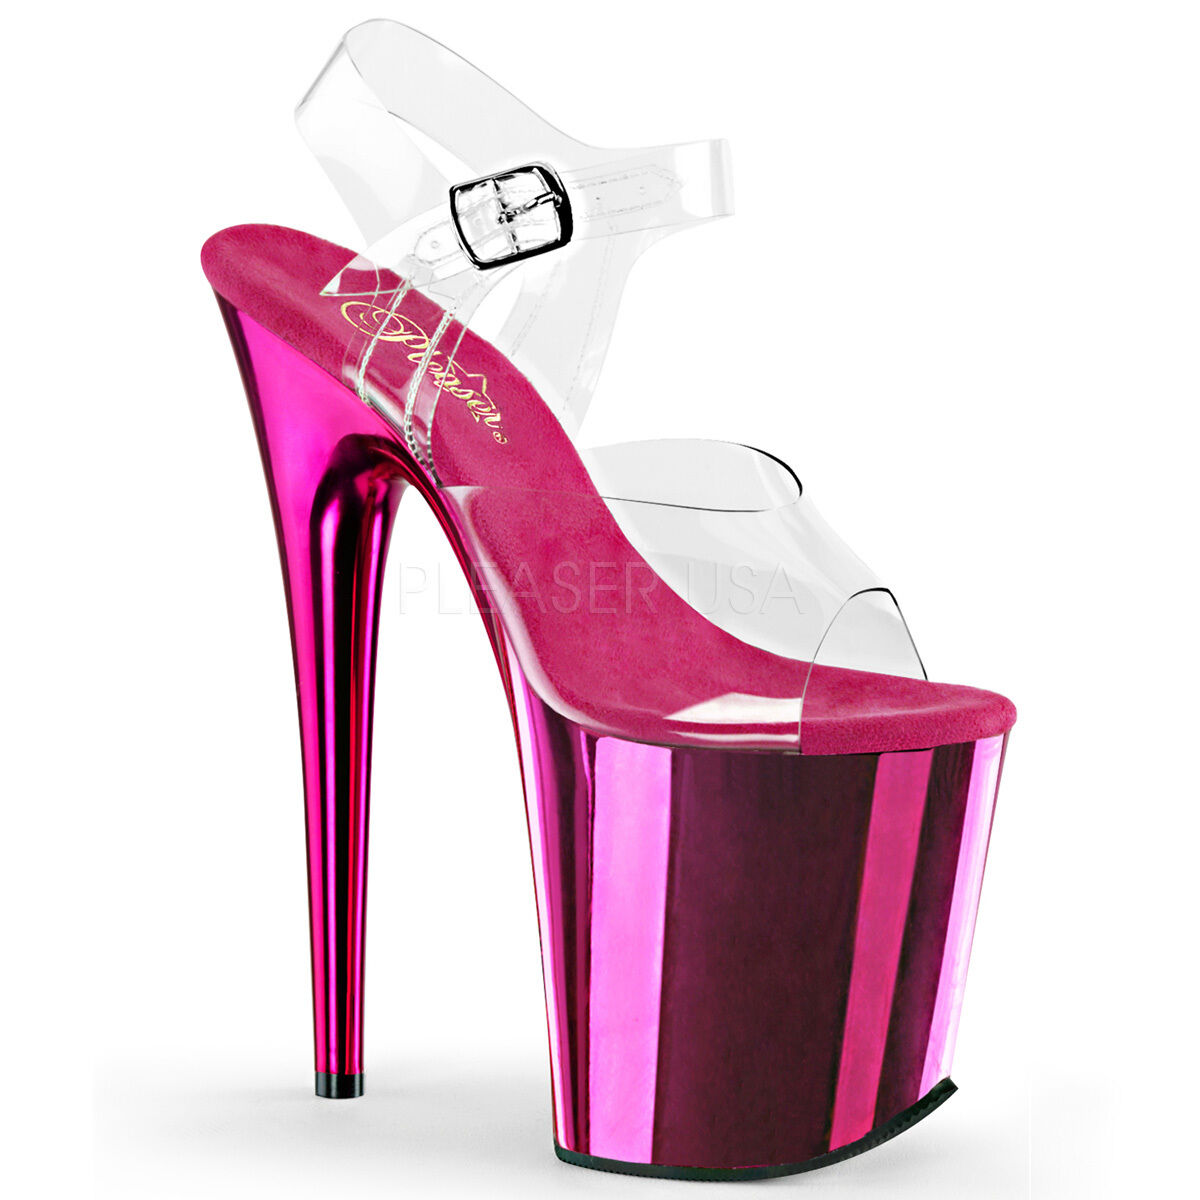 Pleaser Flamingo-808 Schuhes Schuhes Schuhes Platform Sandales High Heels Ankle Strap Pole Dancing 384117